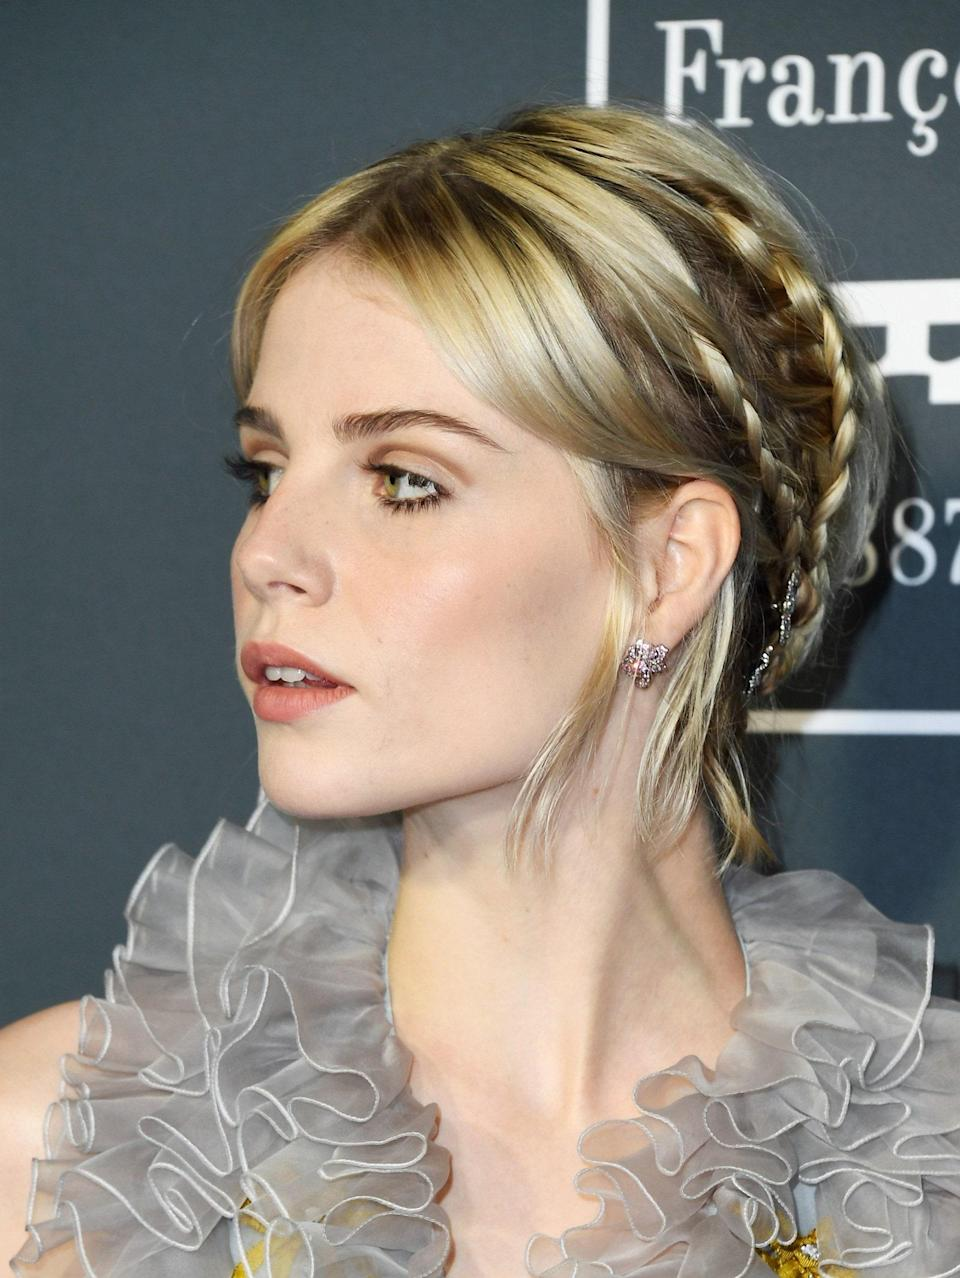 """Lucy Boynton's creamy blond color is basically a lesson in tones. """"It works with all skin tones because of the subtle warm and cool reflects,"""" says <a href=""""https://www.instagram.com/minkimcolorist/?hl=en"""" rel=""""nofollow noopener"""" target=""""_blank"""" data-ylk=""""slk:Min Kim"""" class=""""link rapid-noclick-resp"""">Min Kim</a>, senior colorist at <a href=""""https://www.butterflystudiosalon.com/"""" rel=""""nofollow noopener"""" target=""""_blank"""" data-ylk=""""slk:Butterfly Studio Salon"""" class=""""link rapid-noclick-resp"""">Butterfly Studio Salon</a>. """"If you're on the darker shade of blond, ask for a beige version—which is deeper and just as complementary for all skin tones."""""""